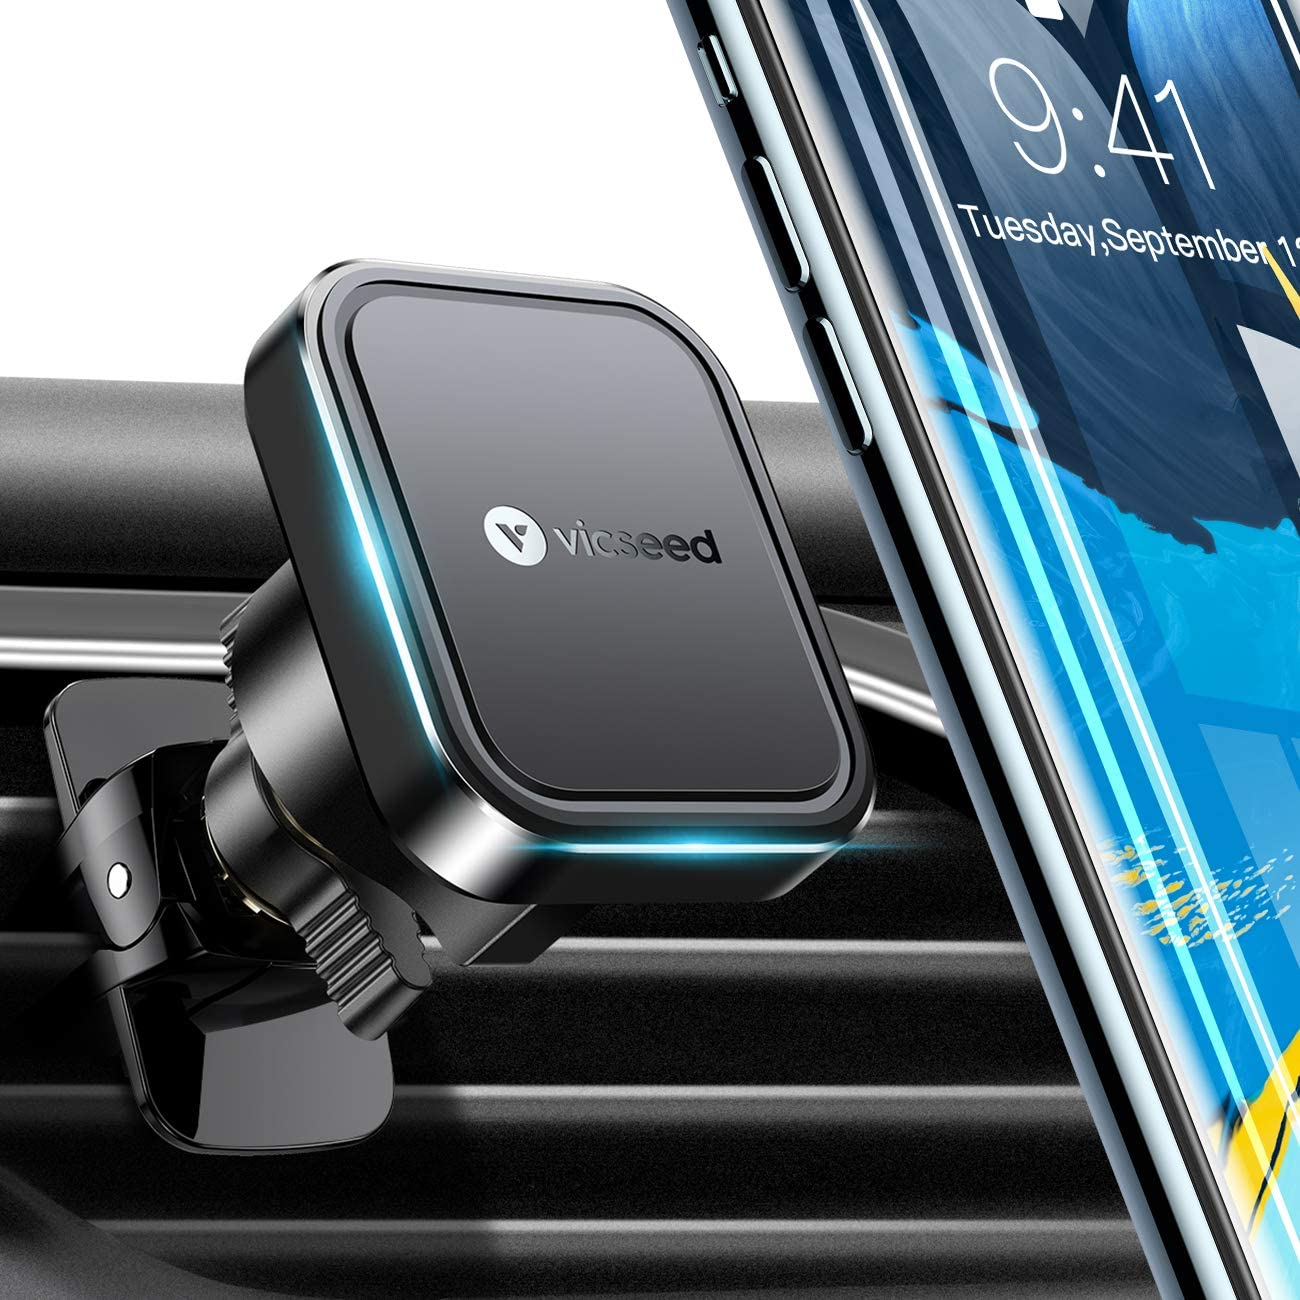 VICSEED Car Phone Mount Magnetic Phone Car Mount Upgraded 6 Strong Magnets Air Vent Mount 360° Rotation Cell Phone Holder for Car Fit for iPhone 11 Pro Xs Max XR X 9 8 Galaxy S20 Note 10 10+ All Phone